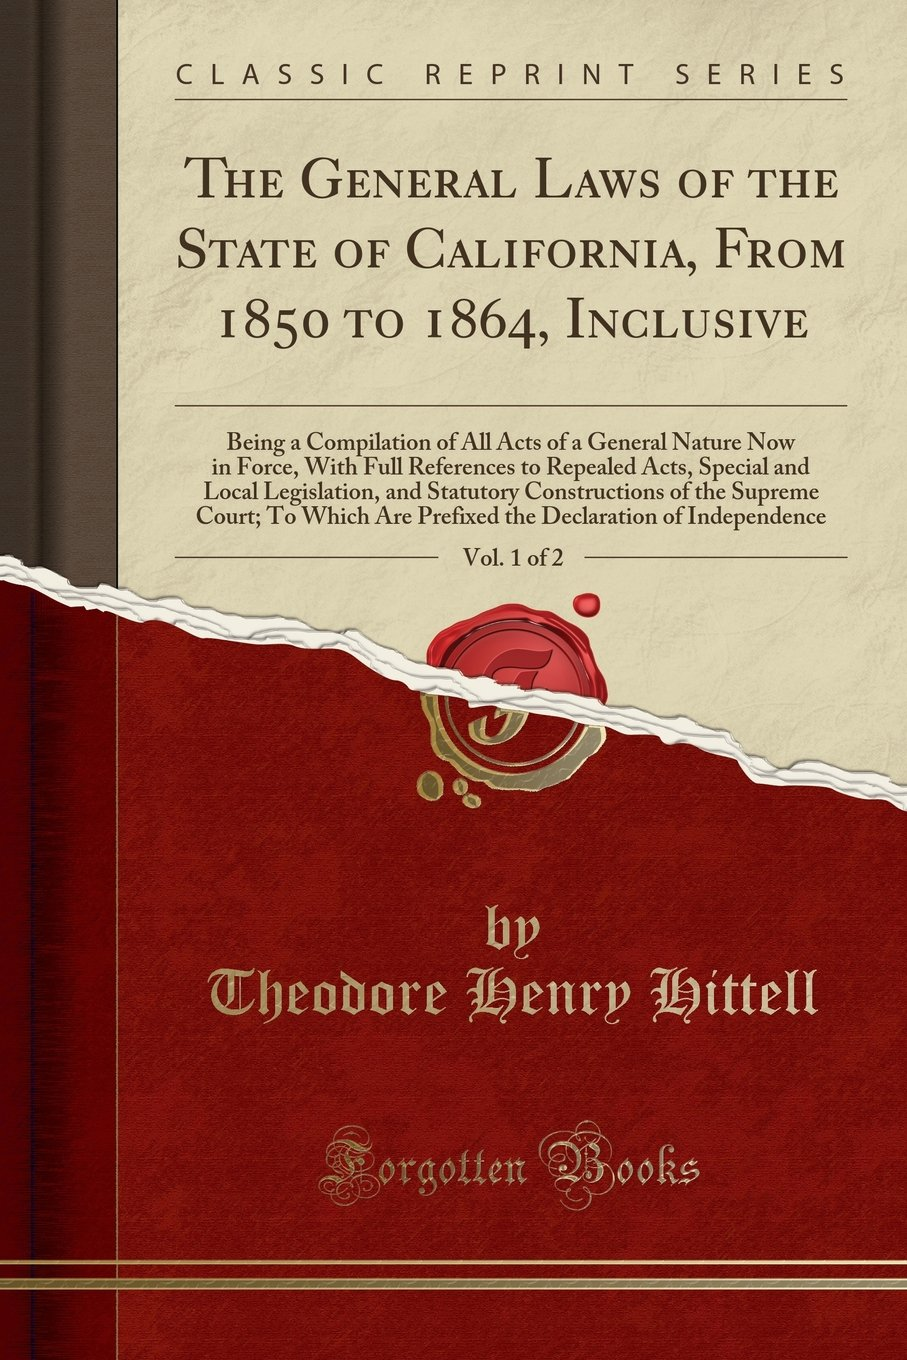 Download The General Laws of the State of California, From 1850 to 1864, Inclusive, Vol. 1 of 2: Being a Compilation of All Acts of a General Nature Now in ... Legislation, and Statutory Constructions of ebook